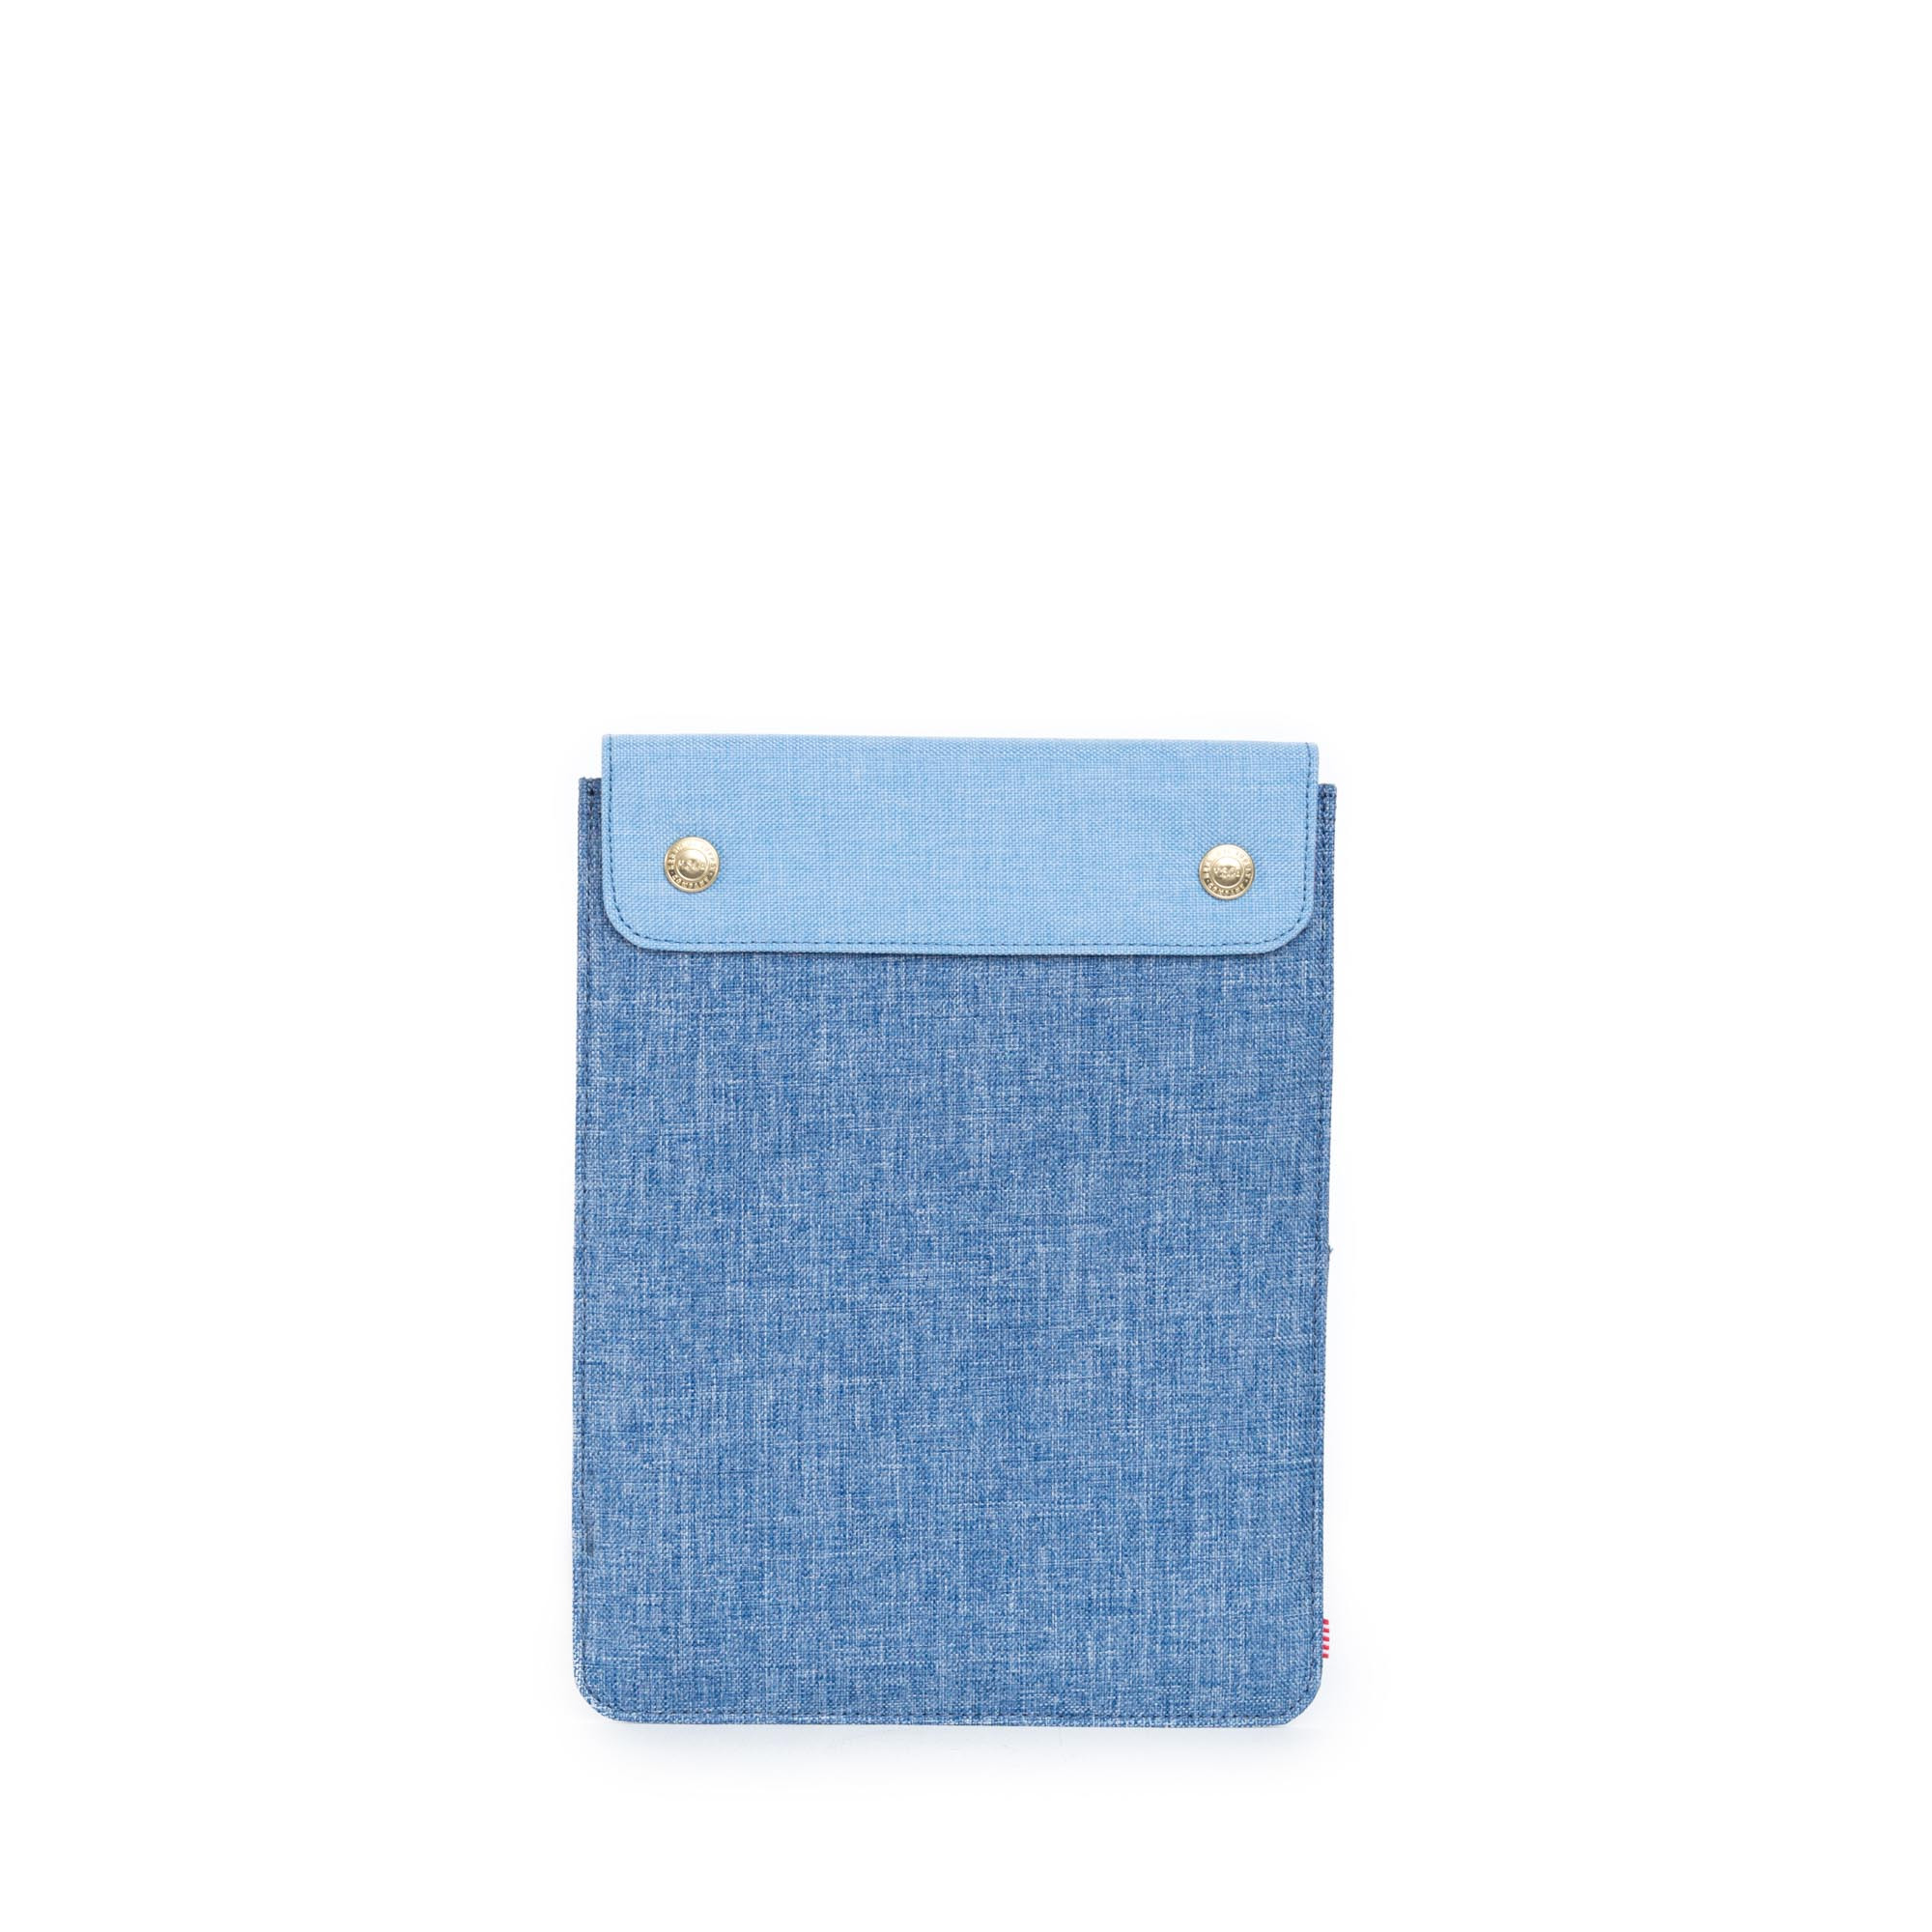 Herschel supply co spokane sleeve ipad air in blue for for Housse macbook air 13 paul smith